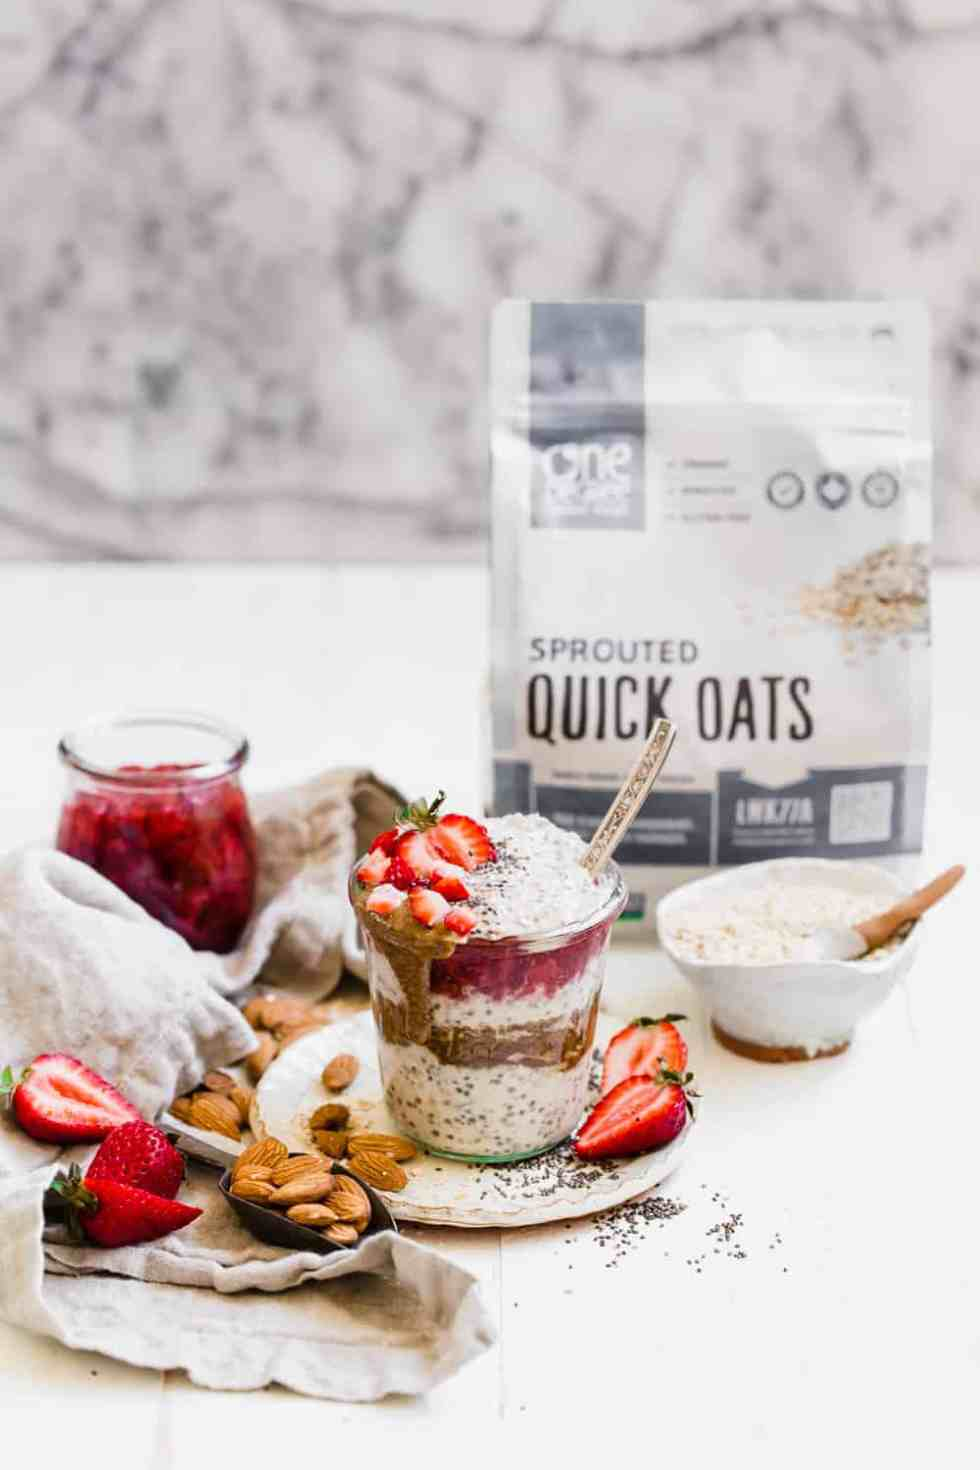 overnight oats in a glass jar with a spoon inside and fresh strawberries